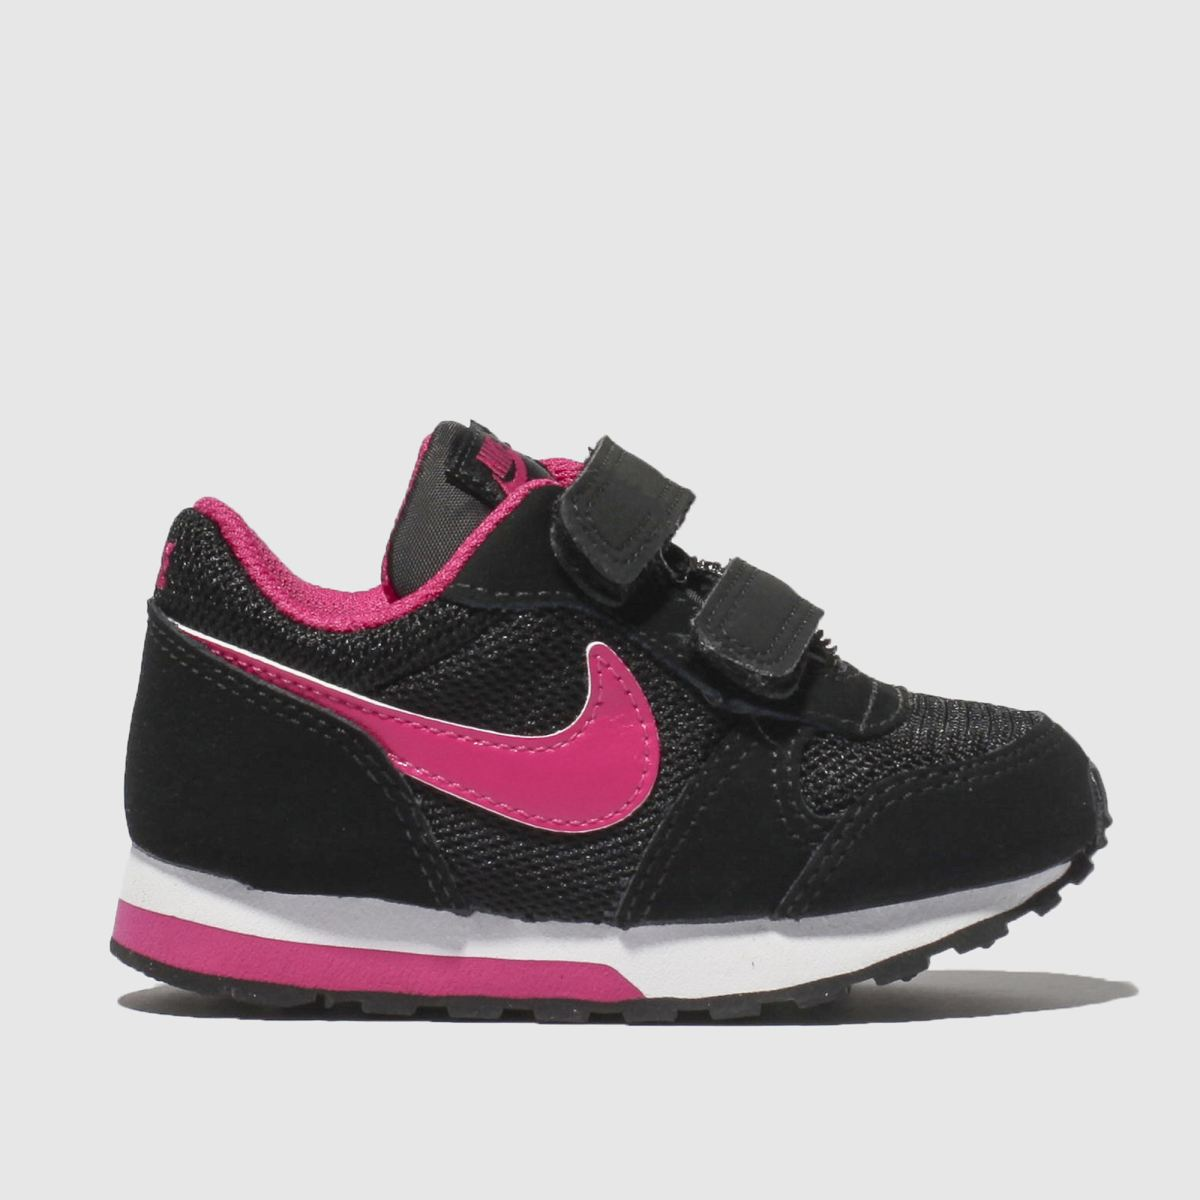 Nike Pink & Black Md Runner 2 Trainers Toddler